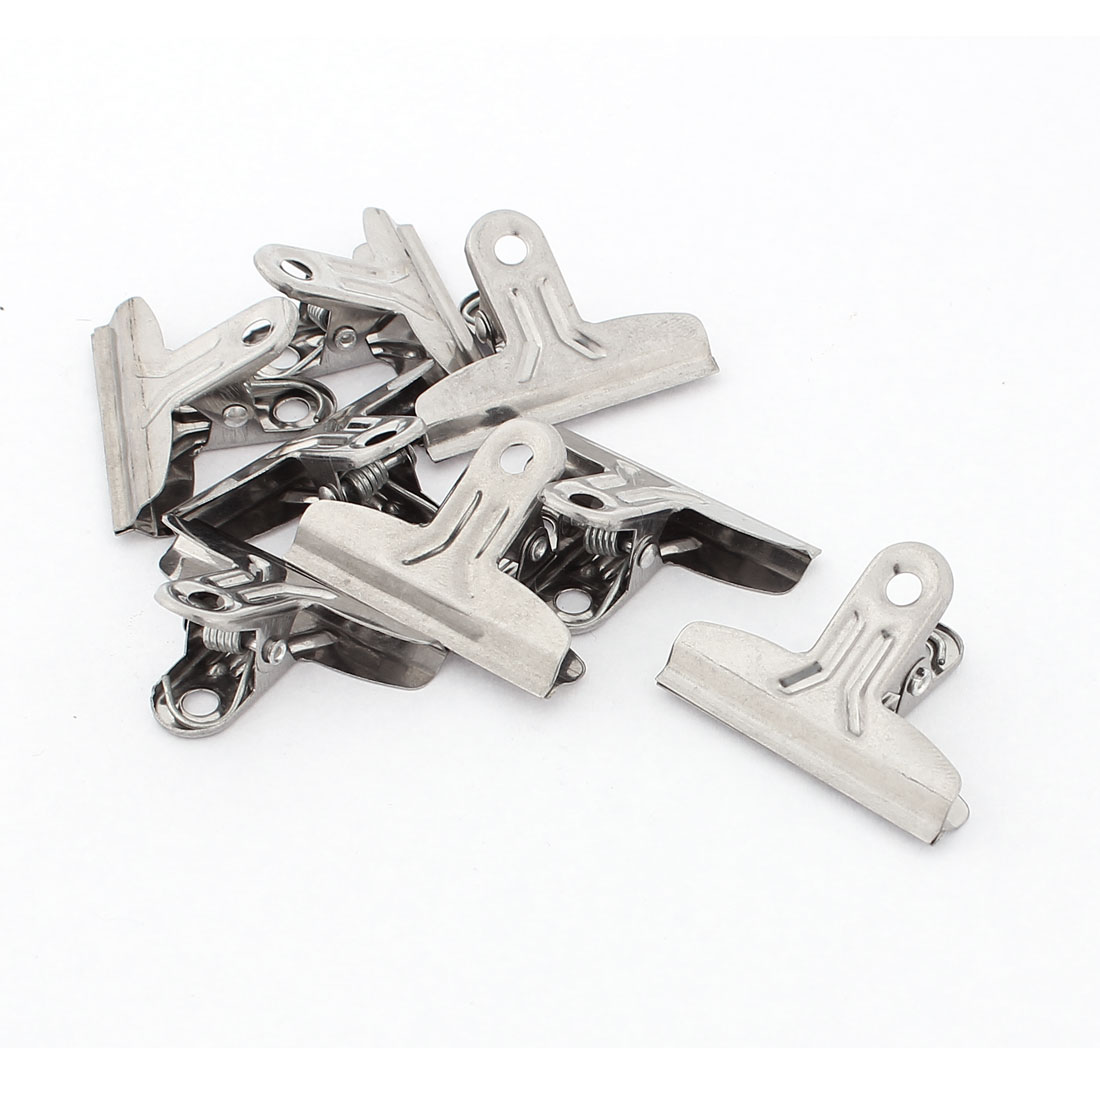 "School Office Stainless Steel File Paper Ticket Binder Clips Clamp 1.5"" 8pcs"